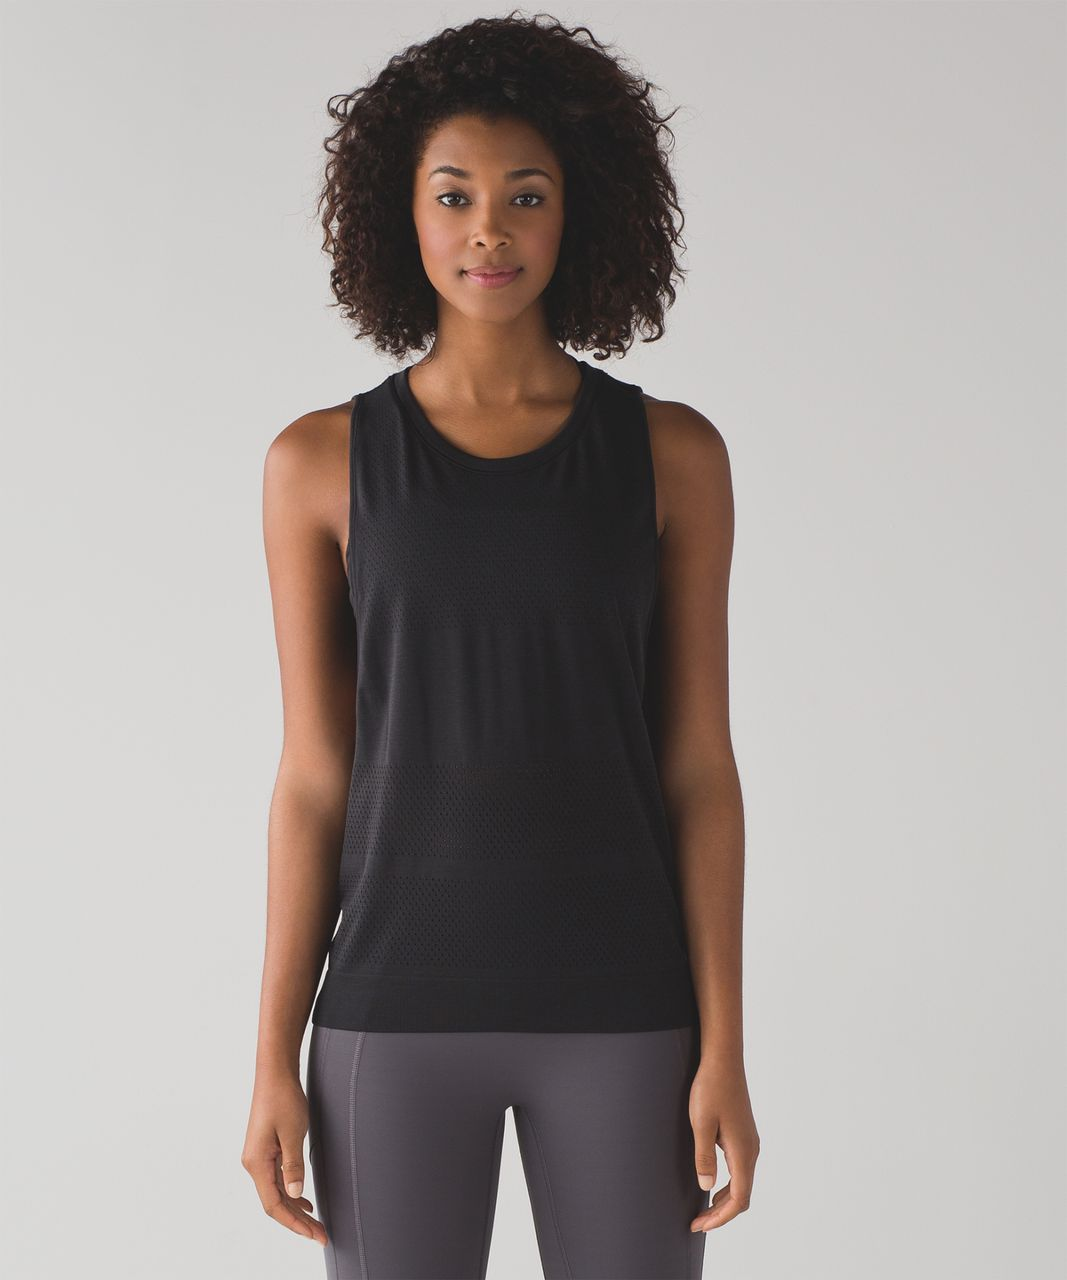 5a37a58a58c840 Lululemon Breeze By Muscle Tank - Black   Black - lulu fanatics